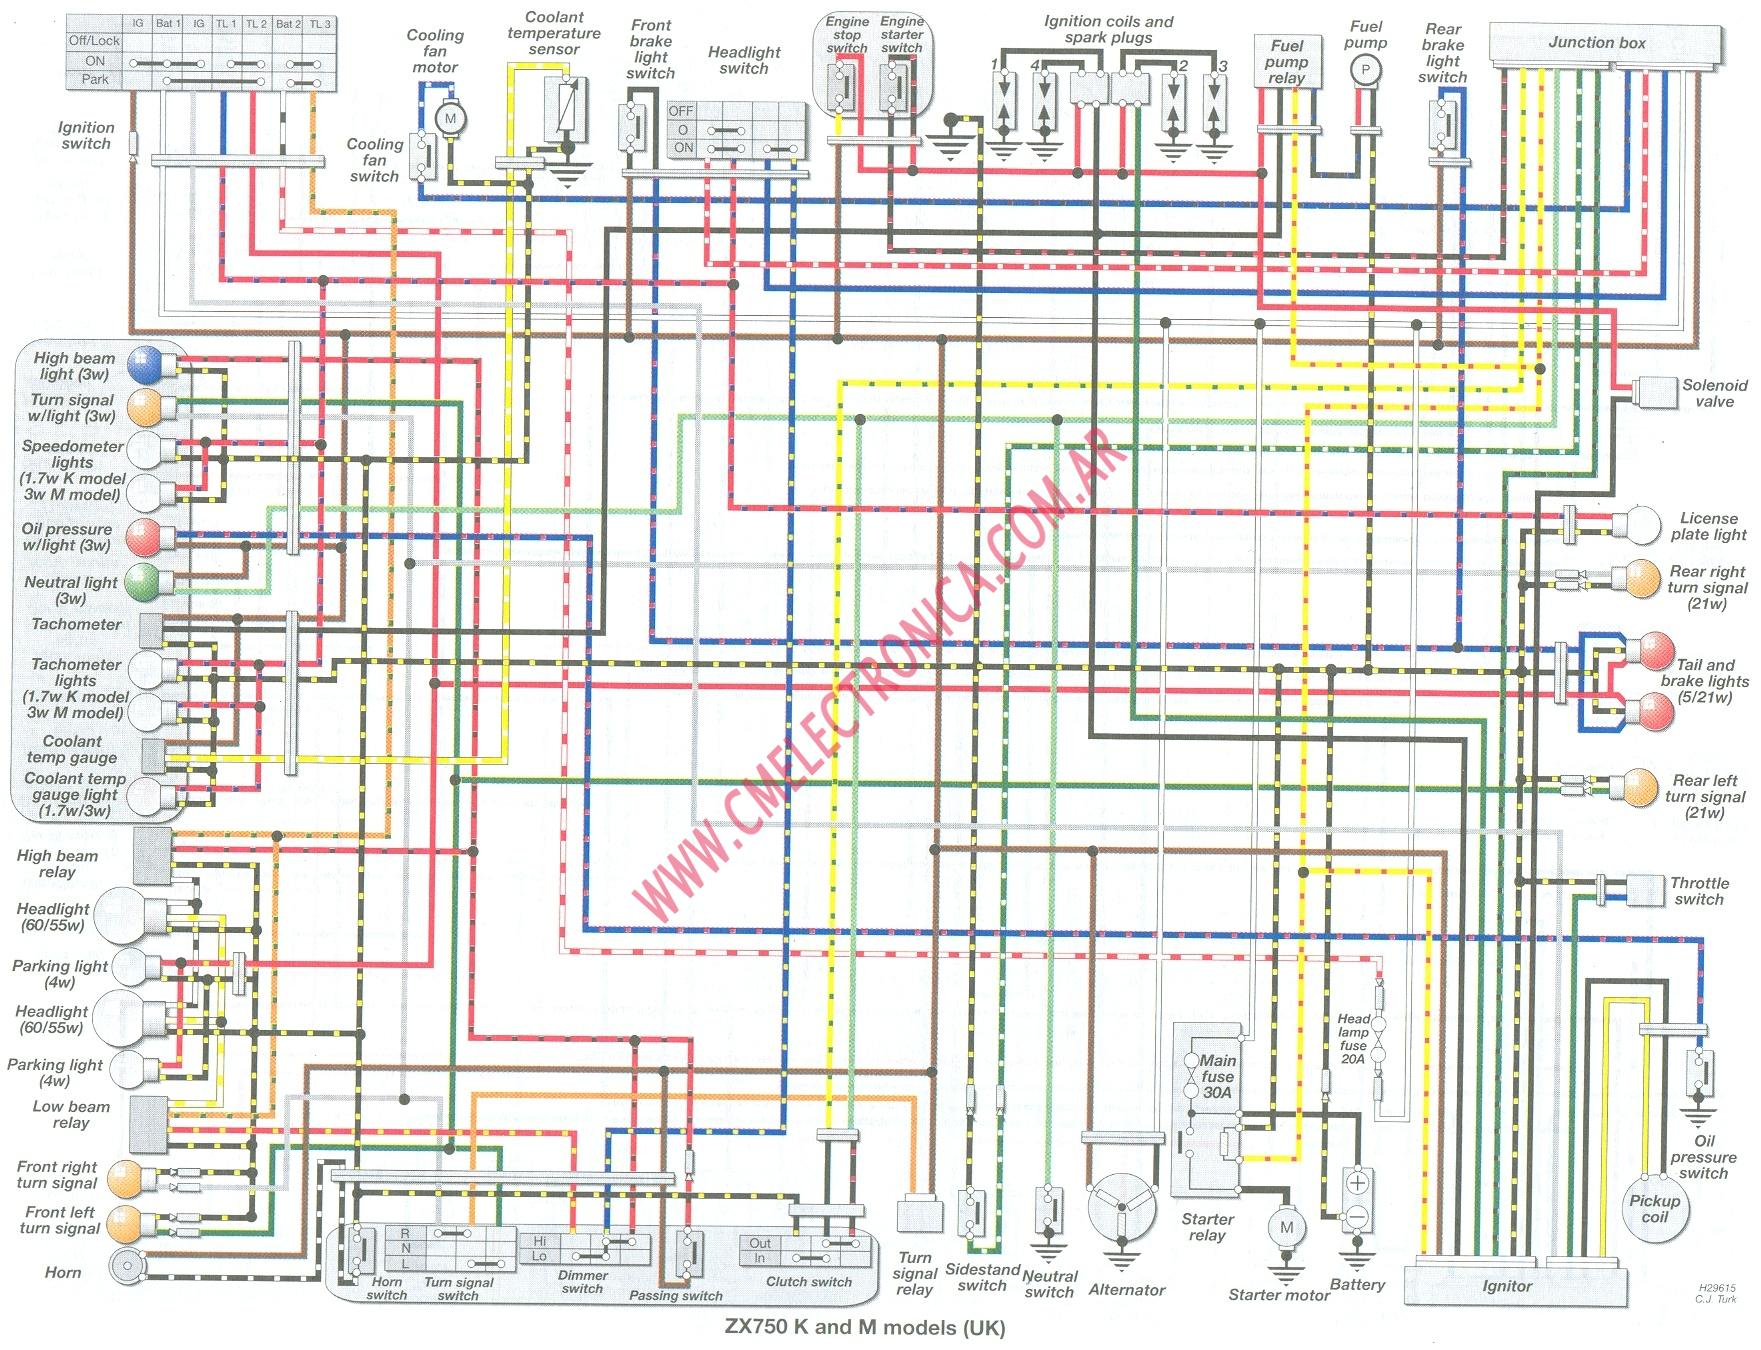 jcb 214 wiring diagram wiring diagrams jcb 214 backhoe wiring diagram a is simple